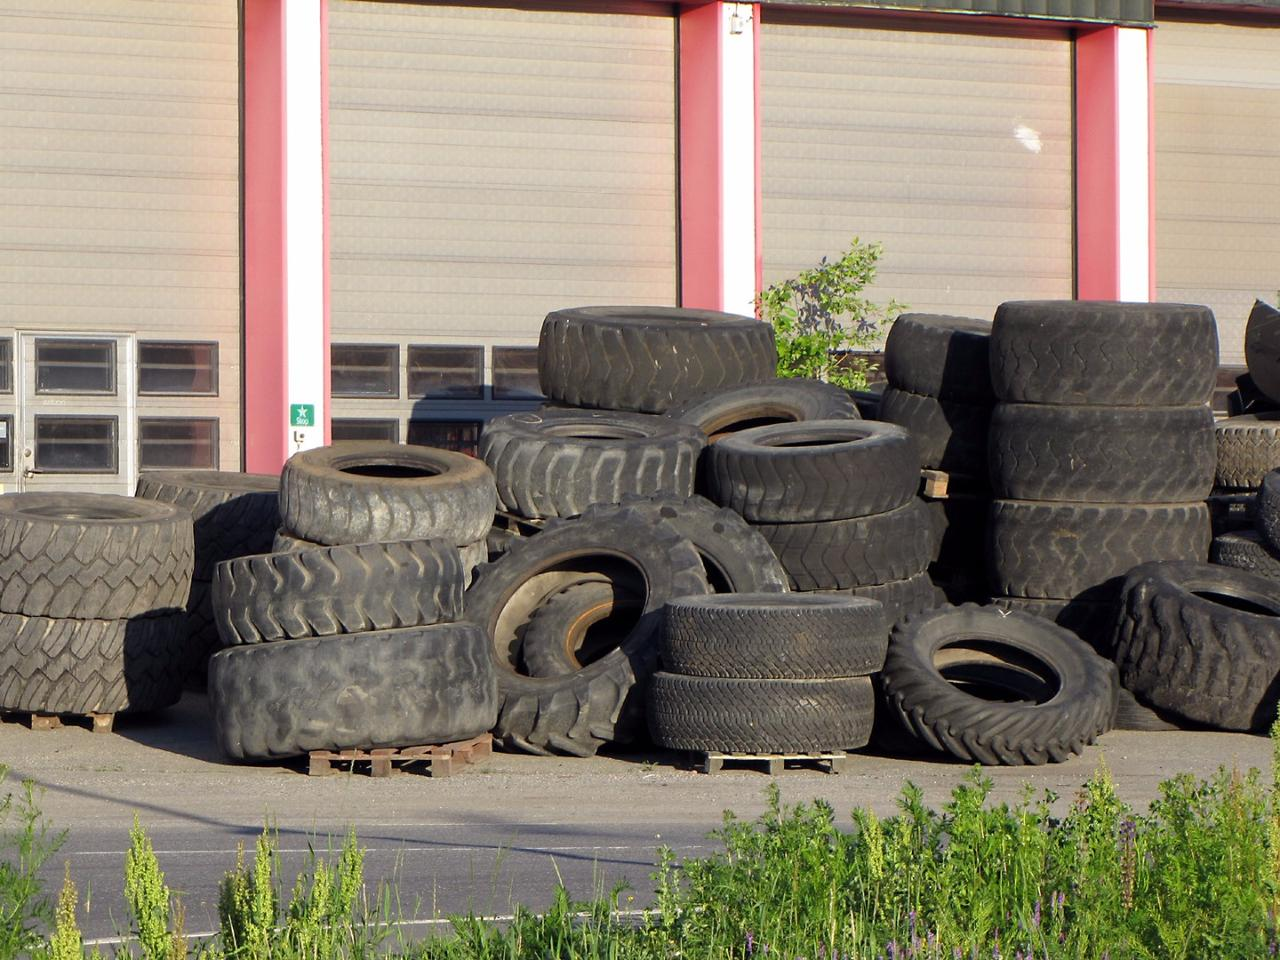 Recycling old tires could become much more energy-efficient, plus the recycled rubber would be of higher quality